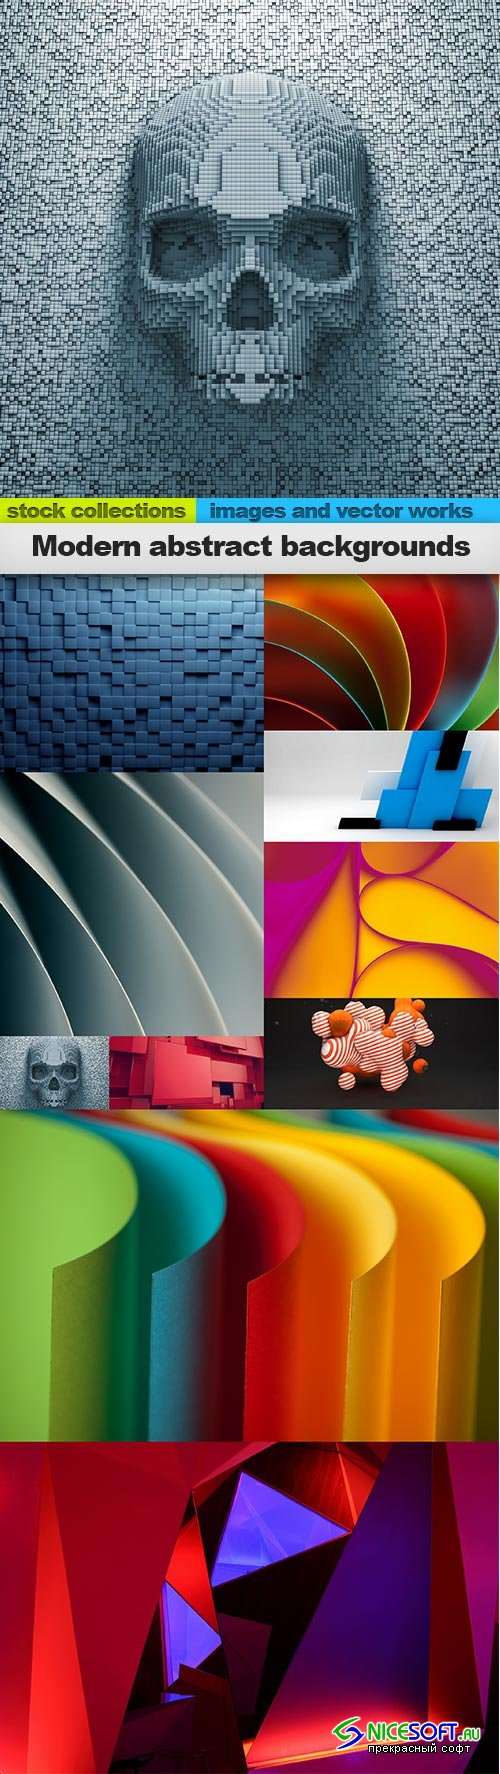 Modern abstract backgrounds, 10 x UHQ JPEG